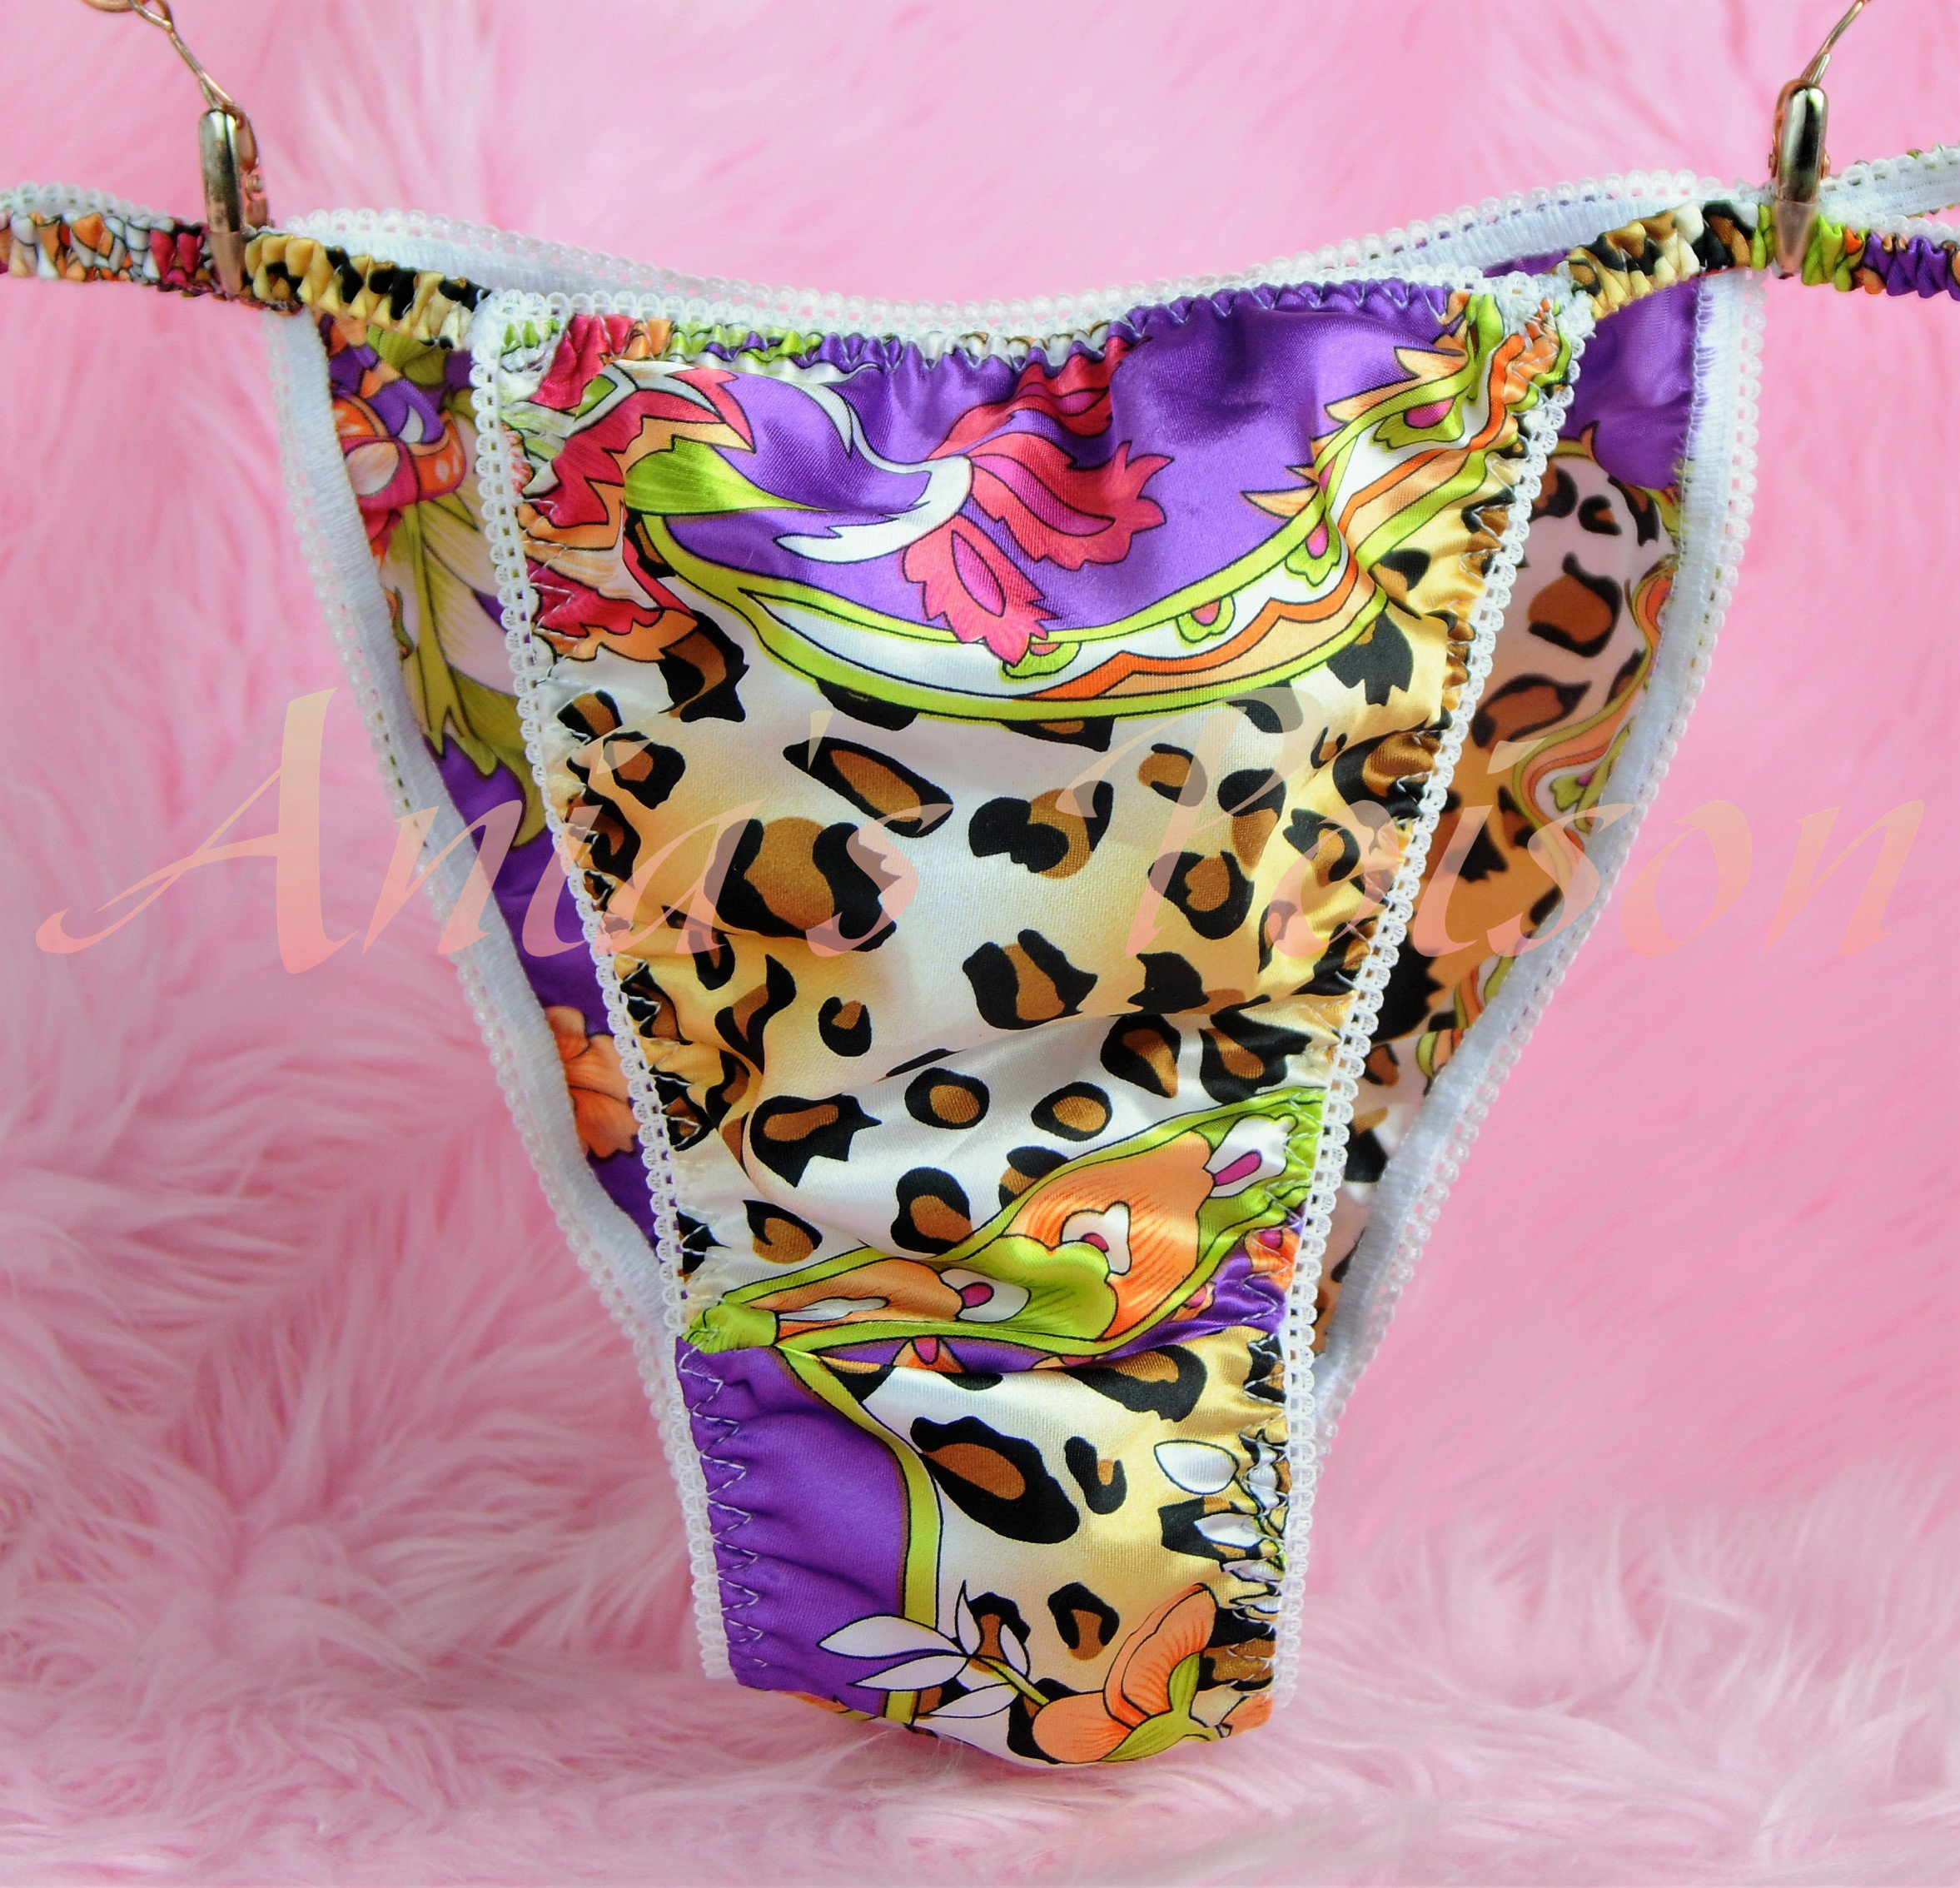 Ania's Poison MANties S - XXL Floral Leopard Animal Prints Super Rare 100% polyester string bikini sissy mens underwear panties